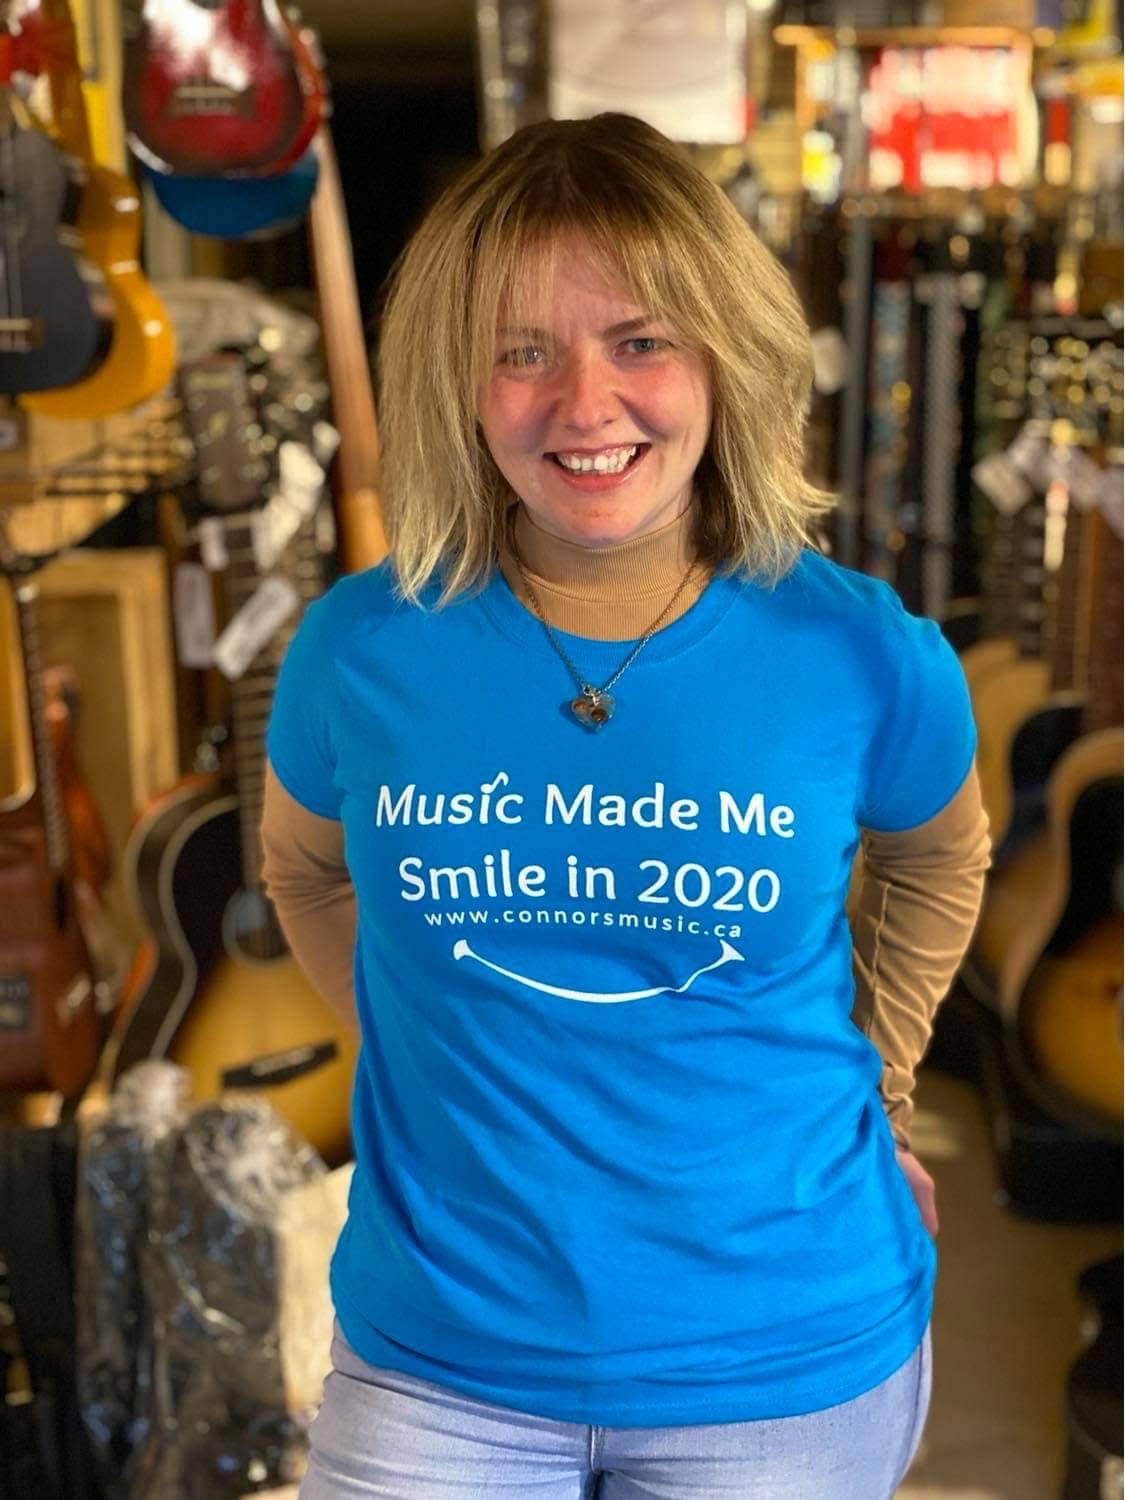 Music Made Me Smile in 2020 T-Shirt